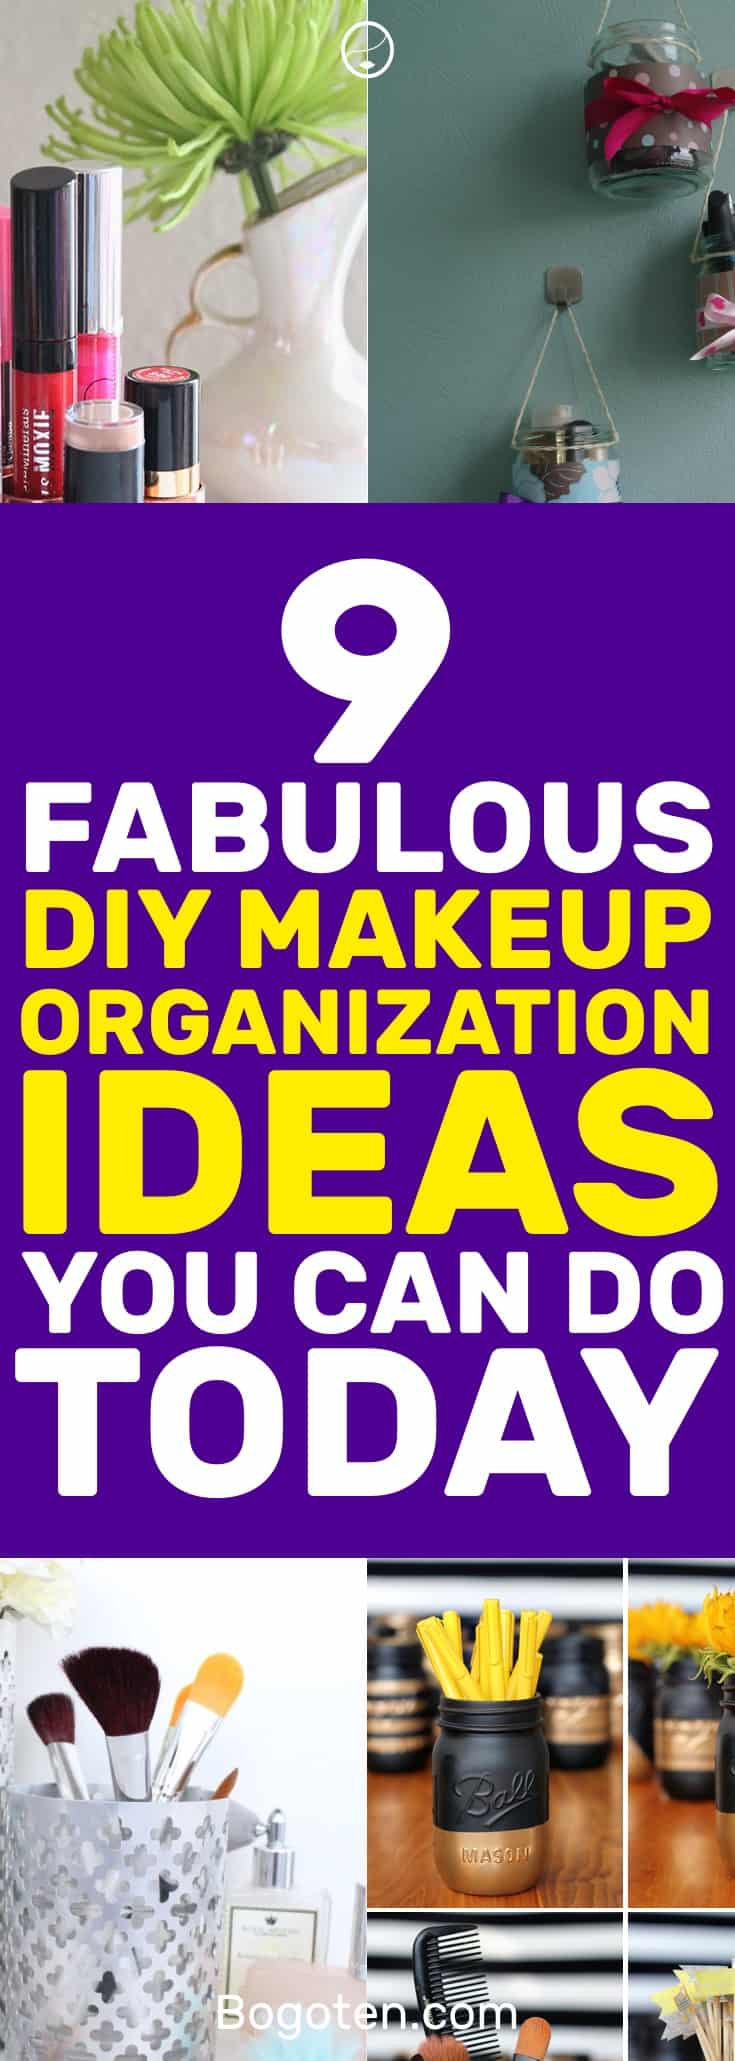 Ready to organize your makeup? These DIY makeup organization tips will get everything in the right place. #DIY #Makeup